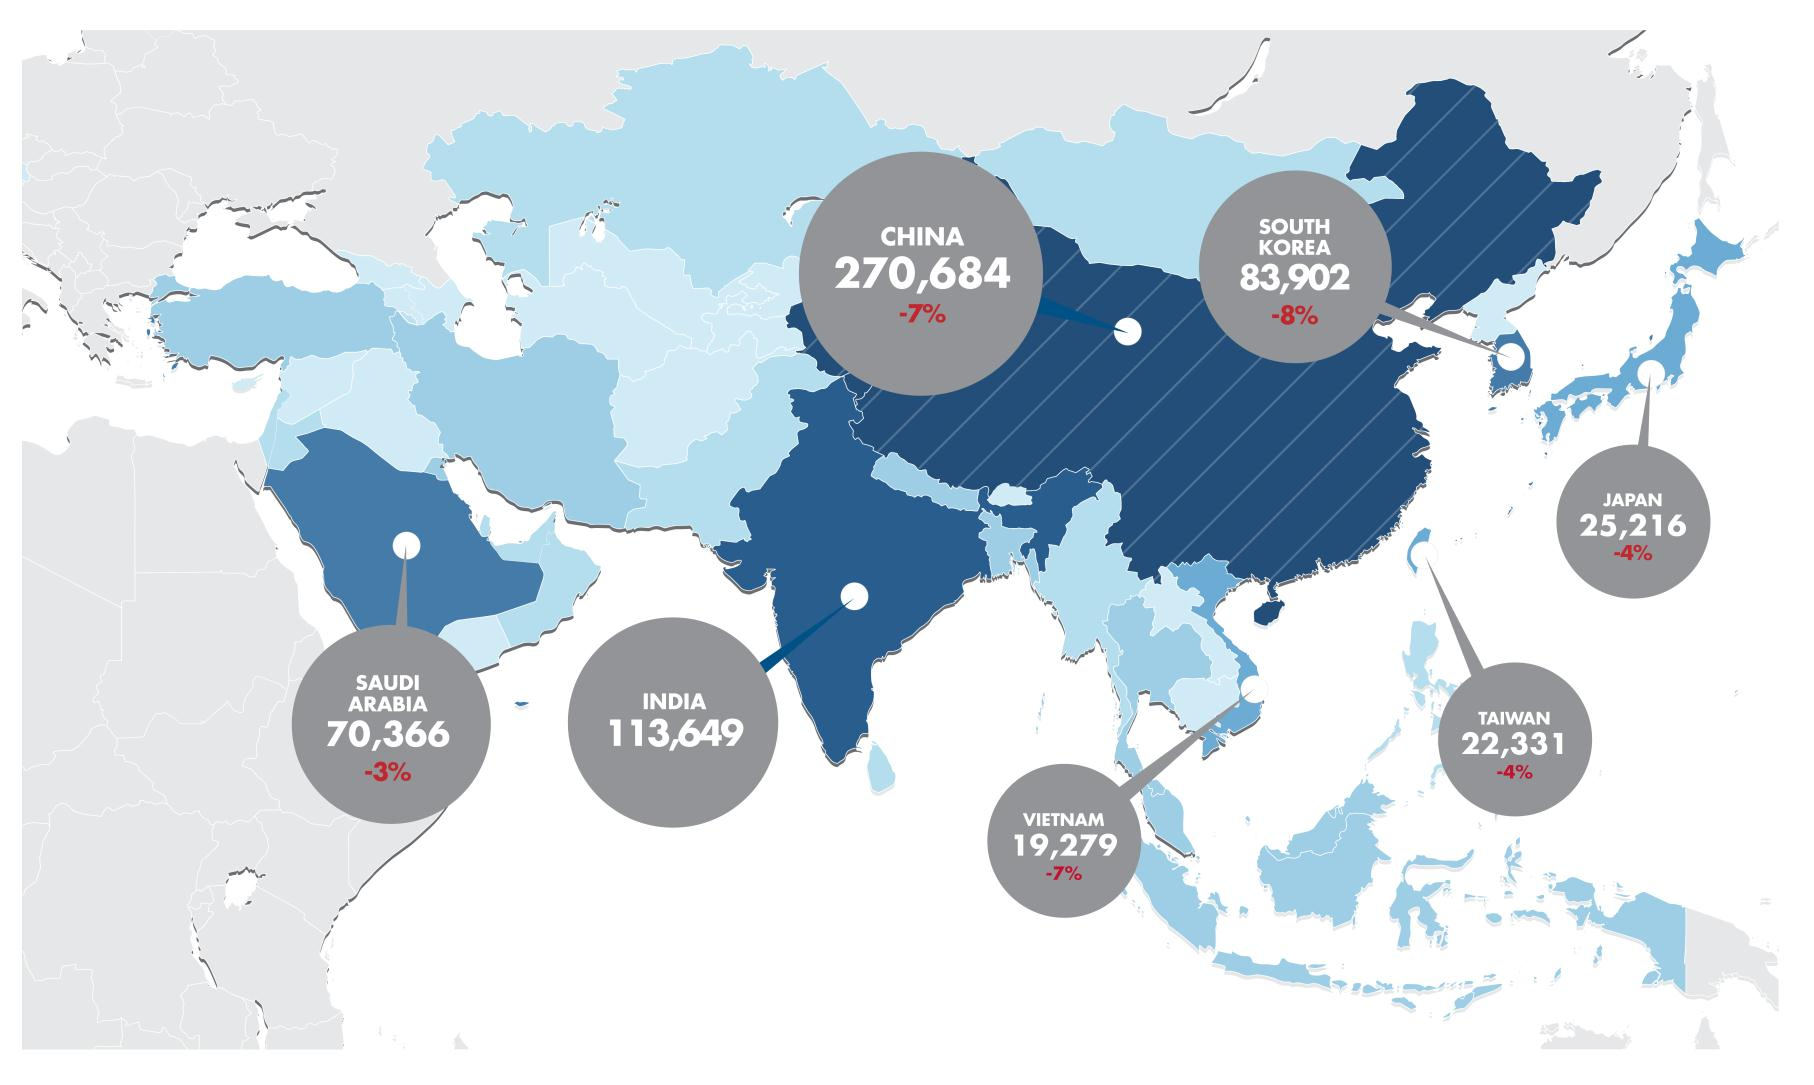 A CLOSER LOOK AT ASIA JULY 2014 COMPARED TO APRIL 2014 * Continent information was compiled using the United Nation's composition of macro geographical (continental) regions, geographical